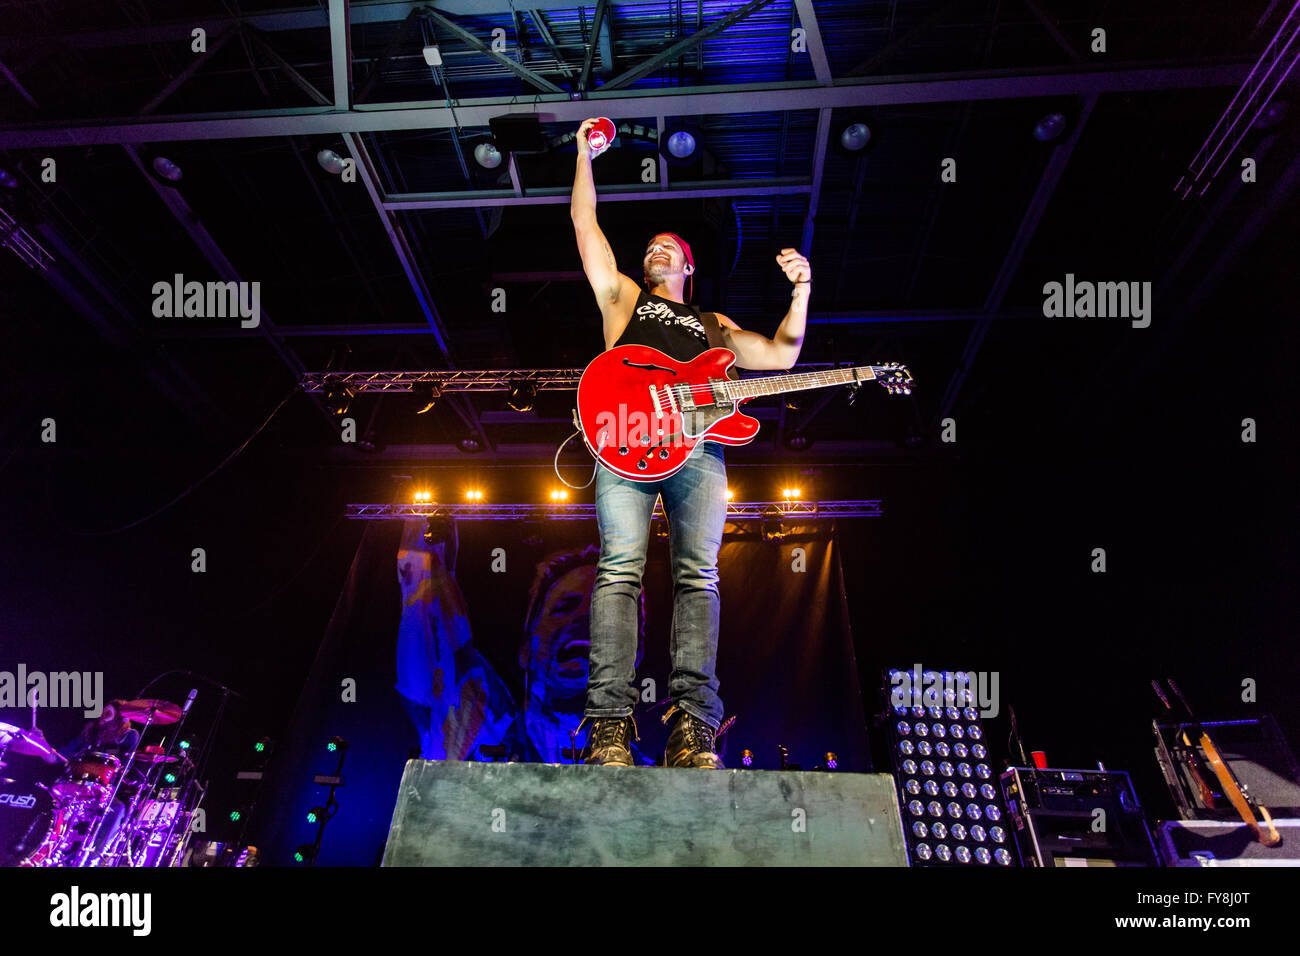 Kip Moore during his Wild Ones tour @ Abbotsford Centre in Abbotsford, BC on February 20th 2016 - Stock Image